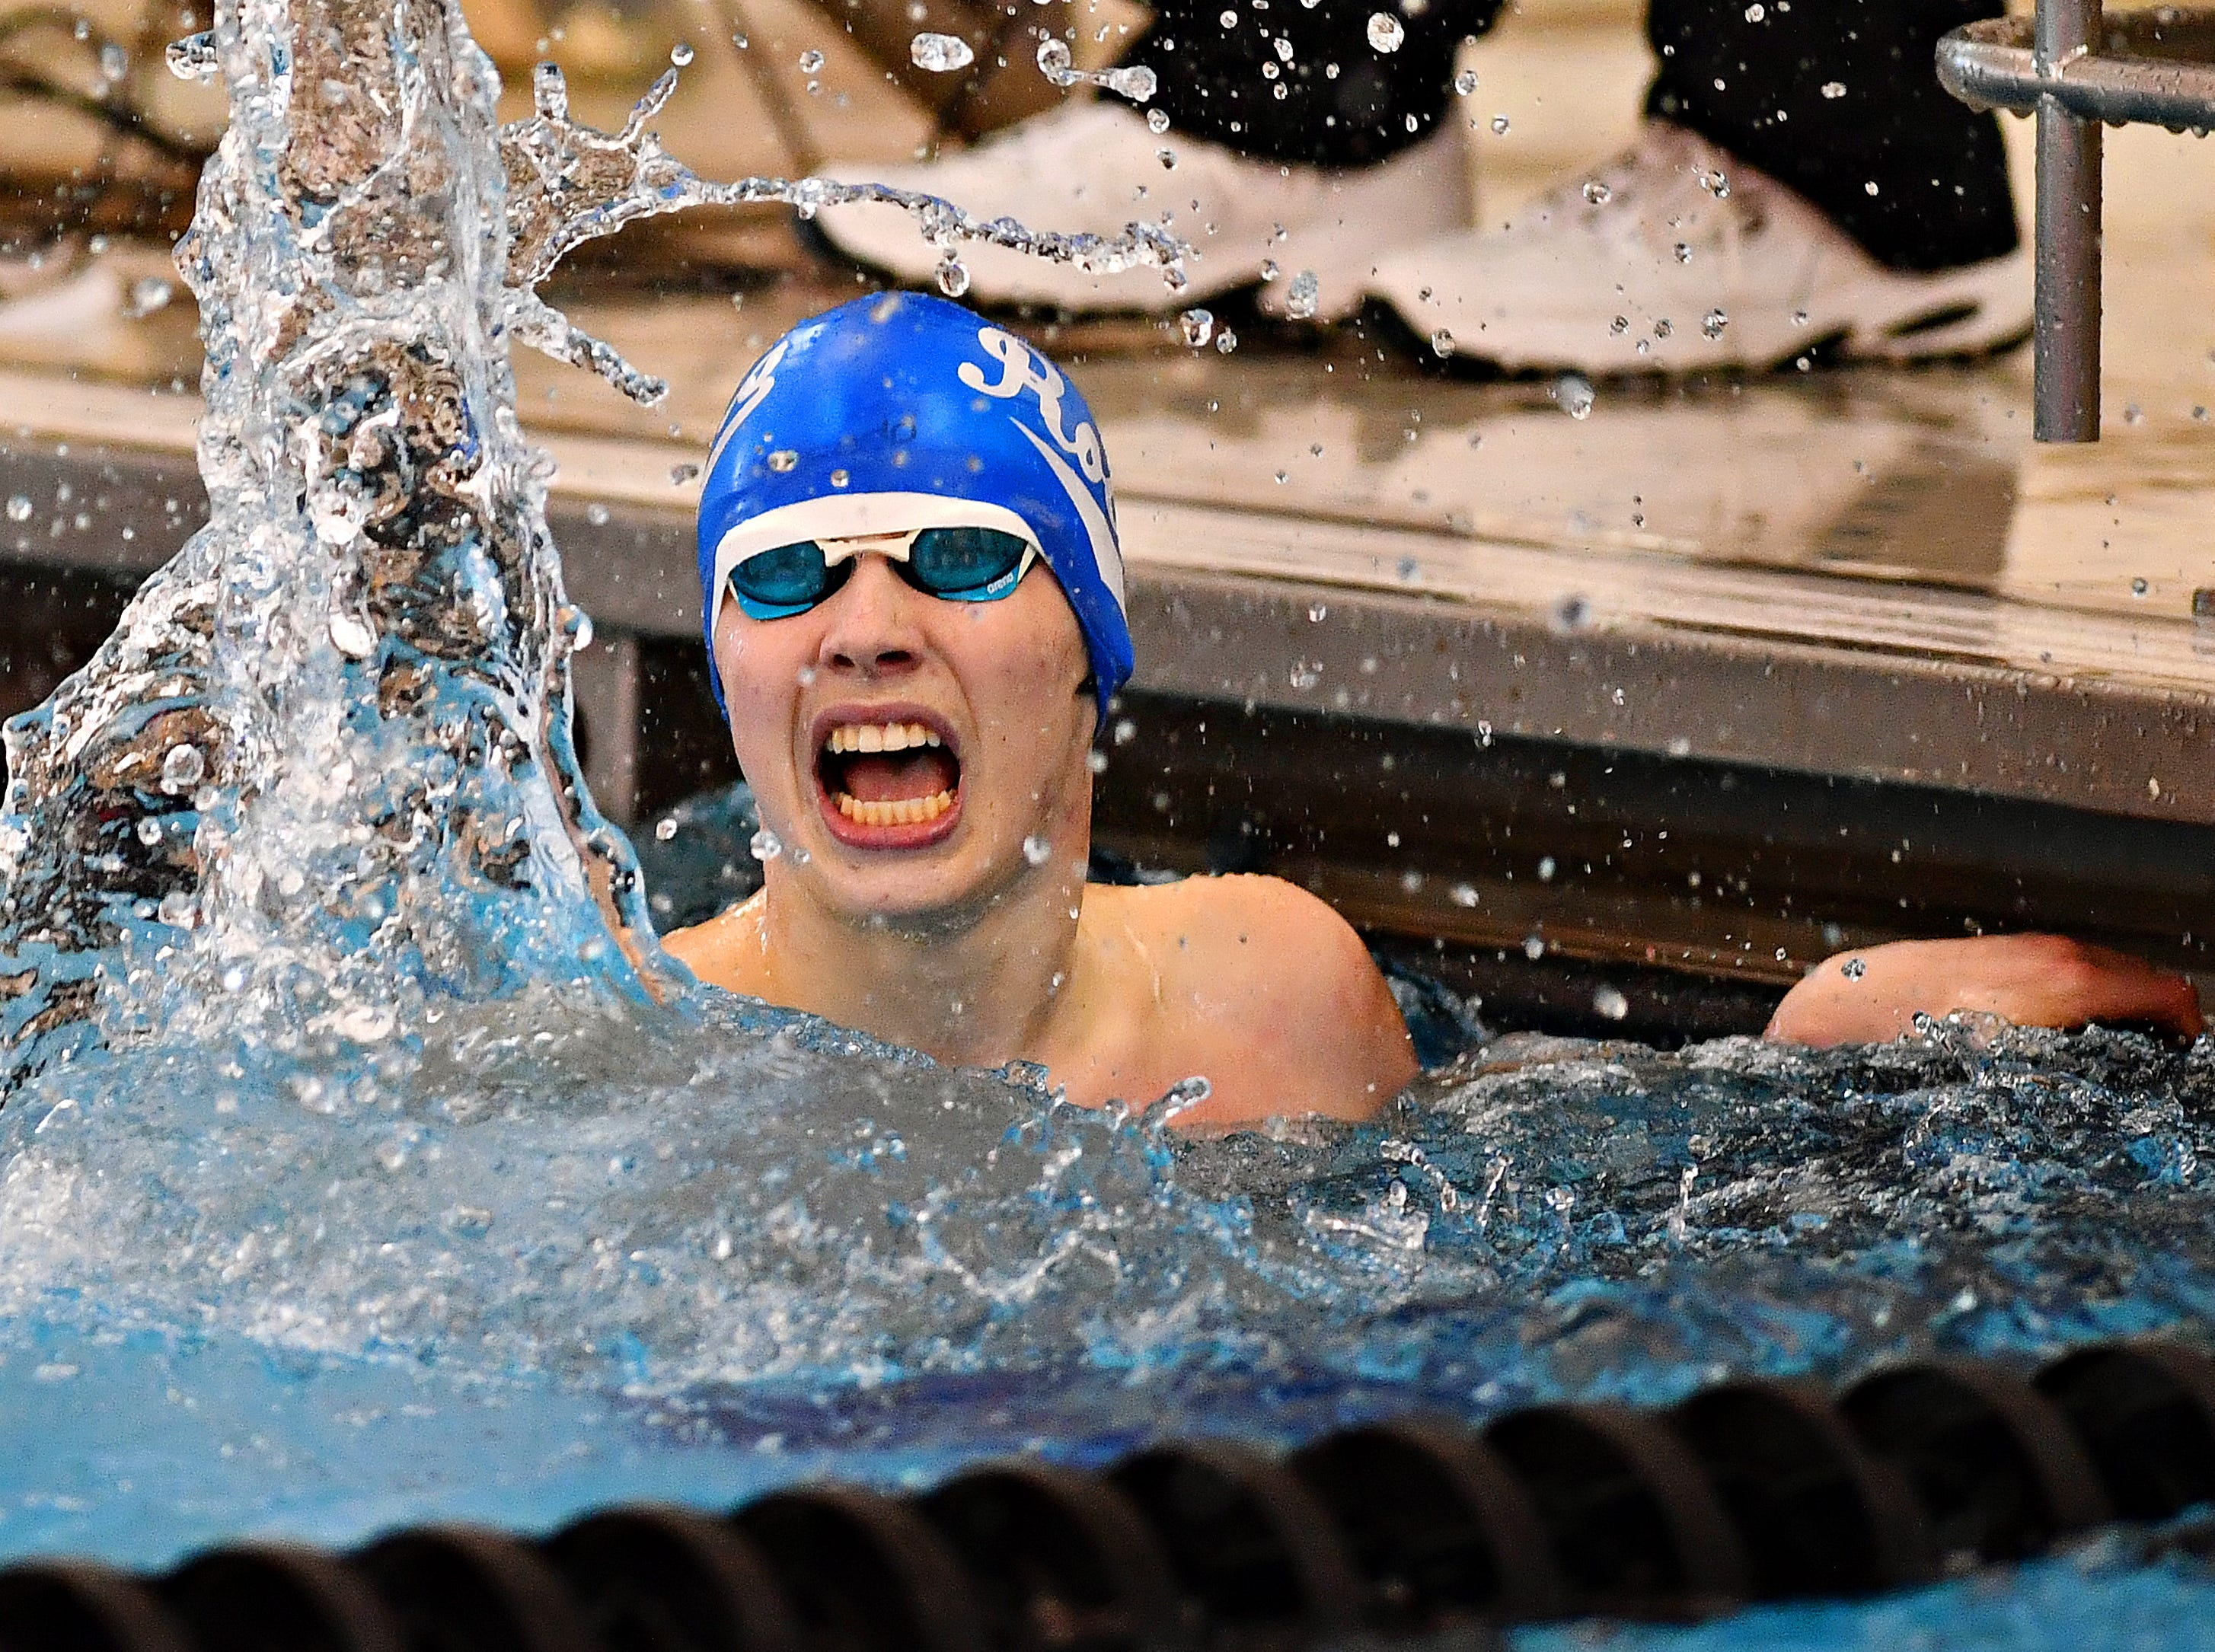 Spring Grove's Daniel K. Gordon reacts after winning the 100 Yard Freestyle event during the York-Adams League Swimming Championship at Central York High School in Springettsbury Township, Saturday, Feb. 9, 2019. Dawn J. Sagert photo